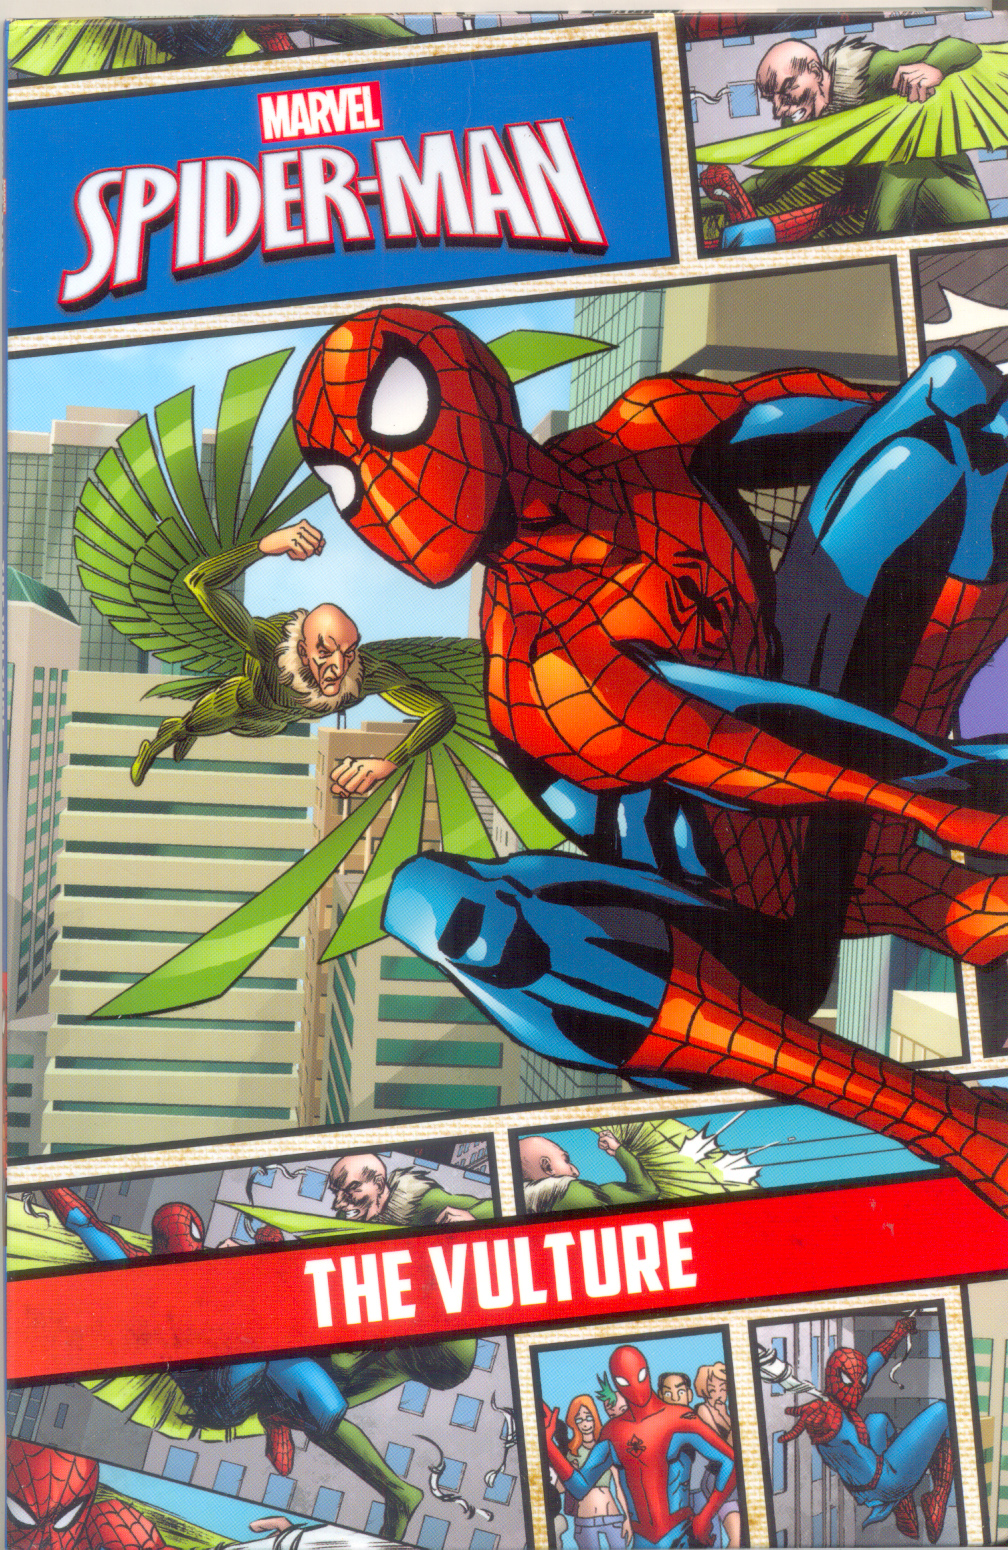 Marvel Spider-Man : The Vulture